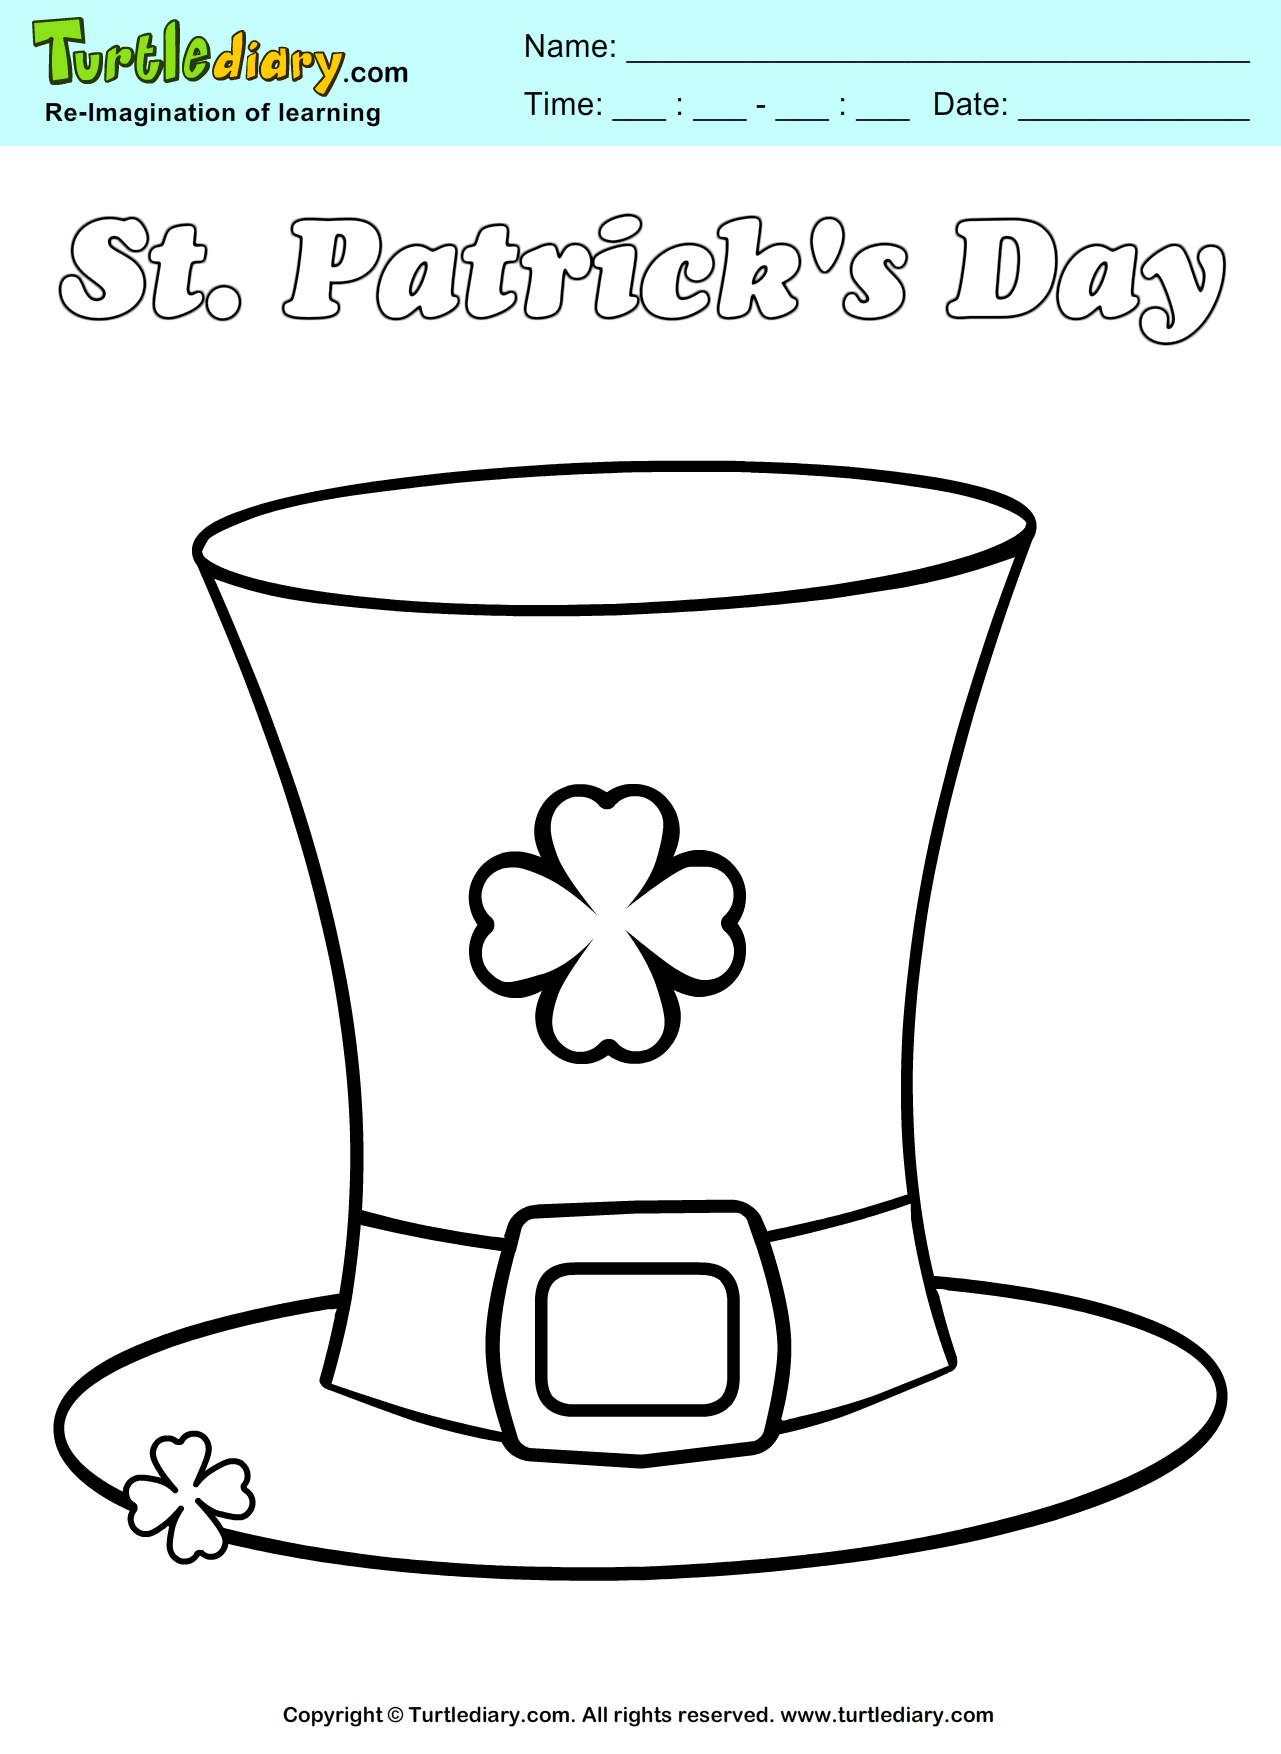 St Patrick S Day Leprechaun Hat Coloring Page Childeducation Crafts Coloring Kids